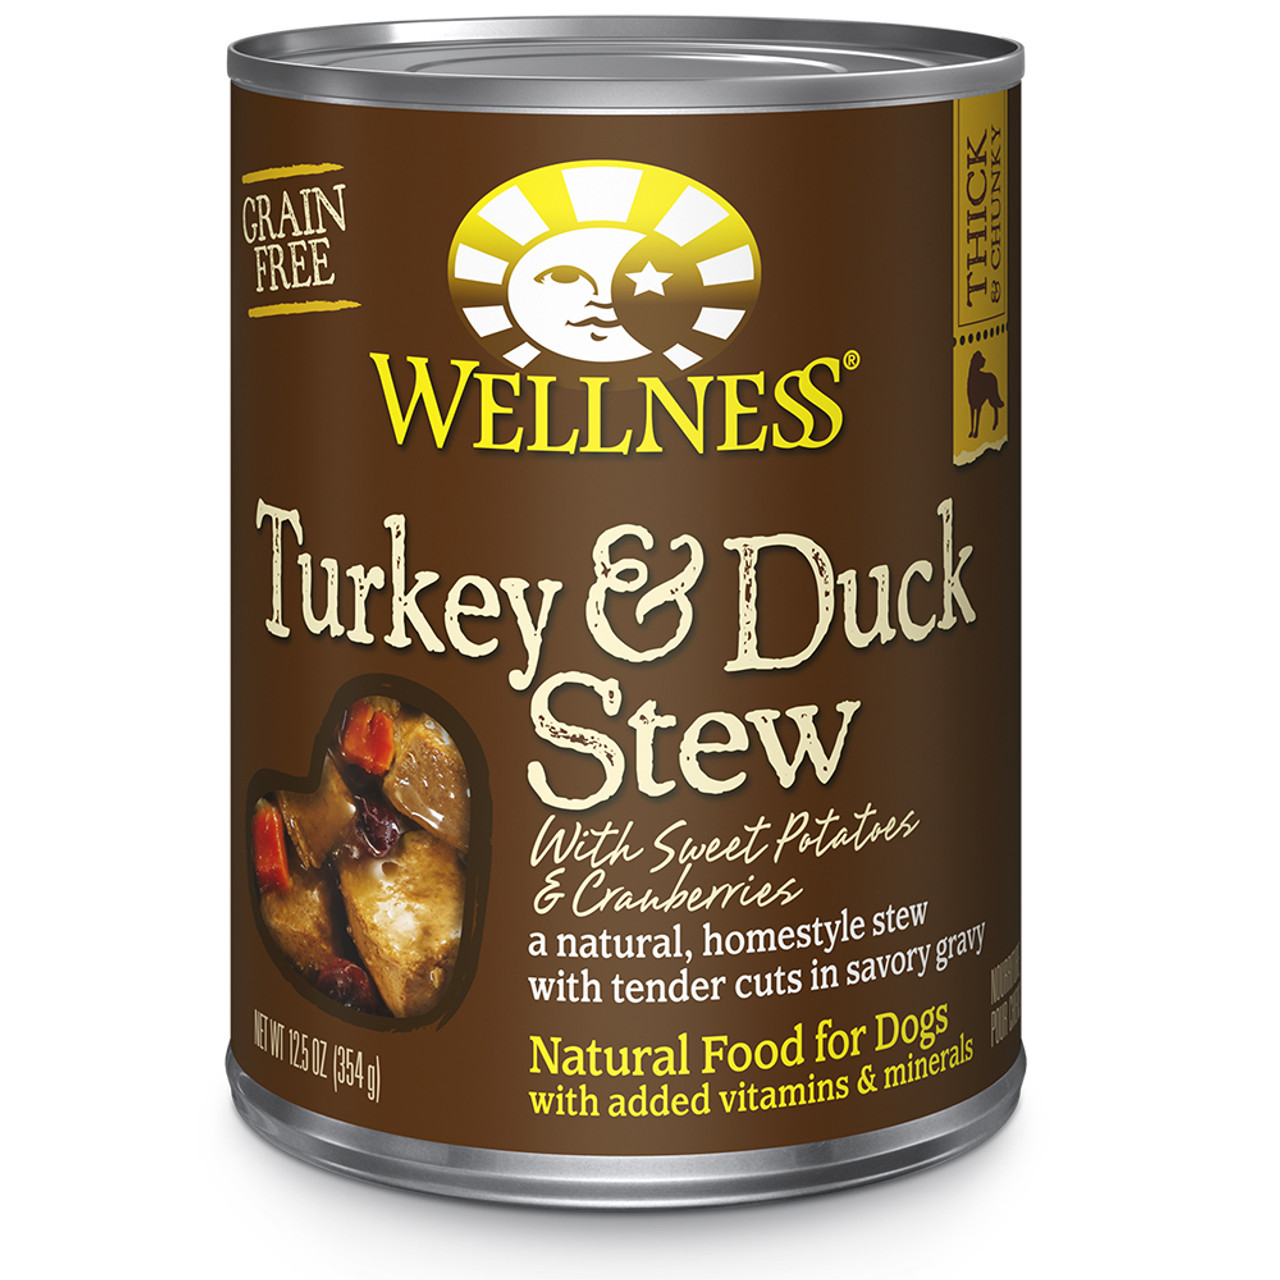 Wellness Homestyle Stew Grain Free Turkey & Duck with Sweet Potatoes & Cranberries Canned Dog Food